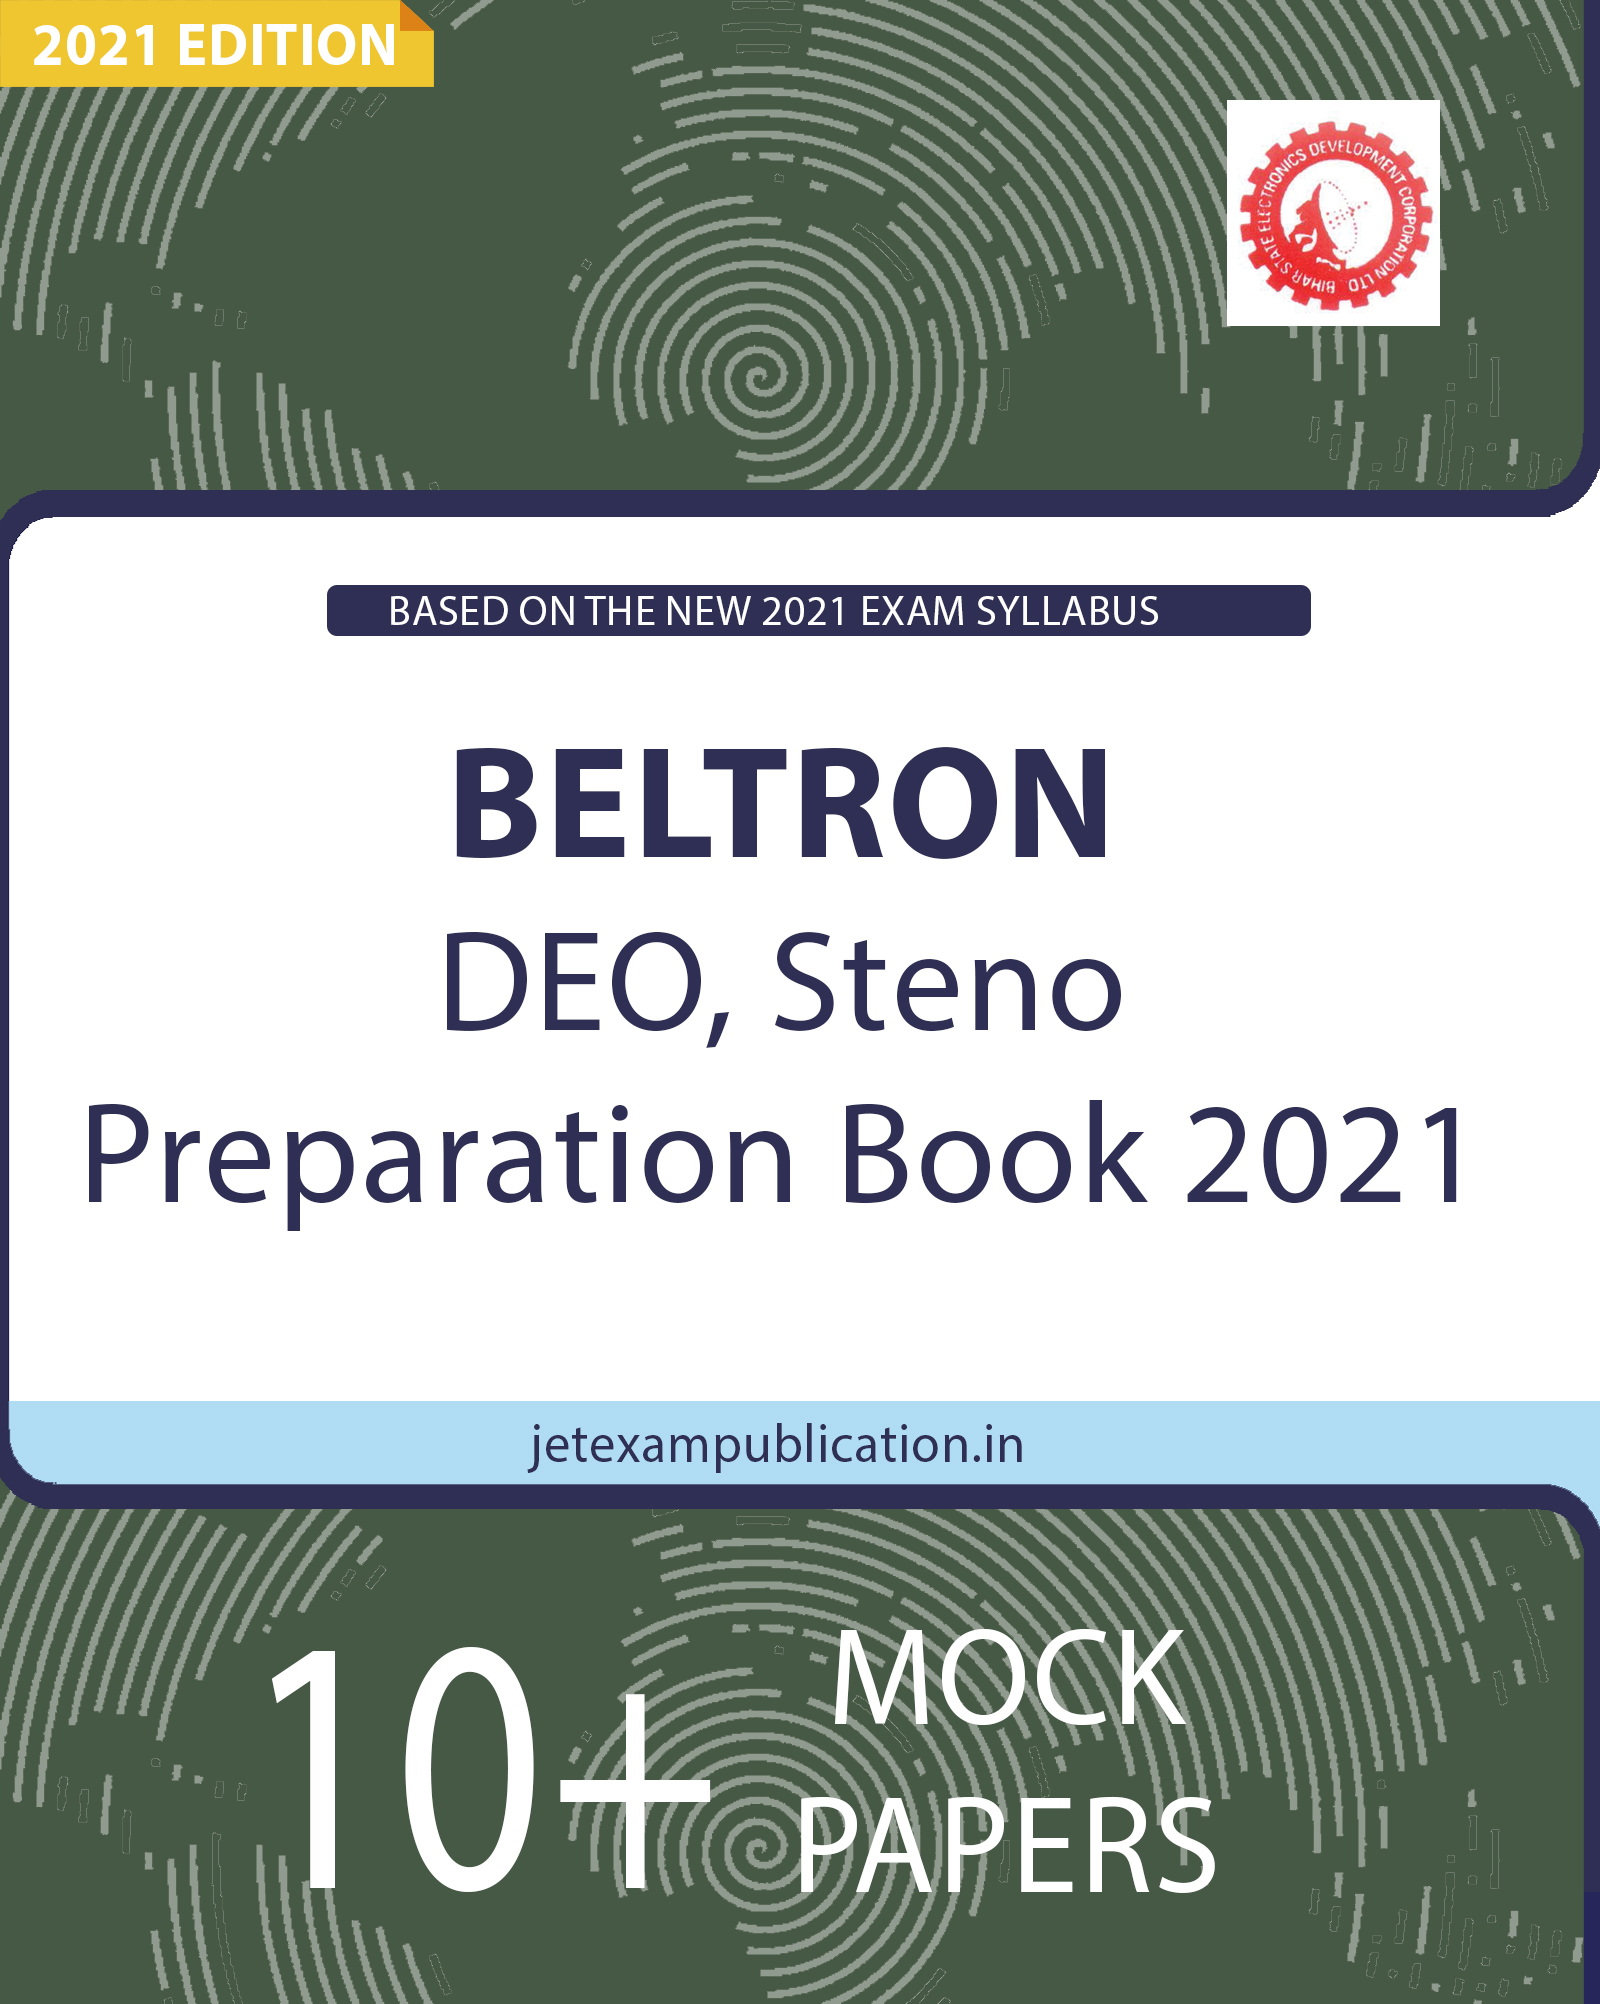 BELTRON DEO, Steno Preparation Book 2021